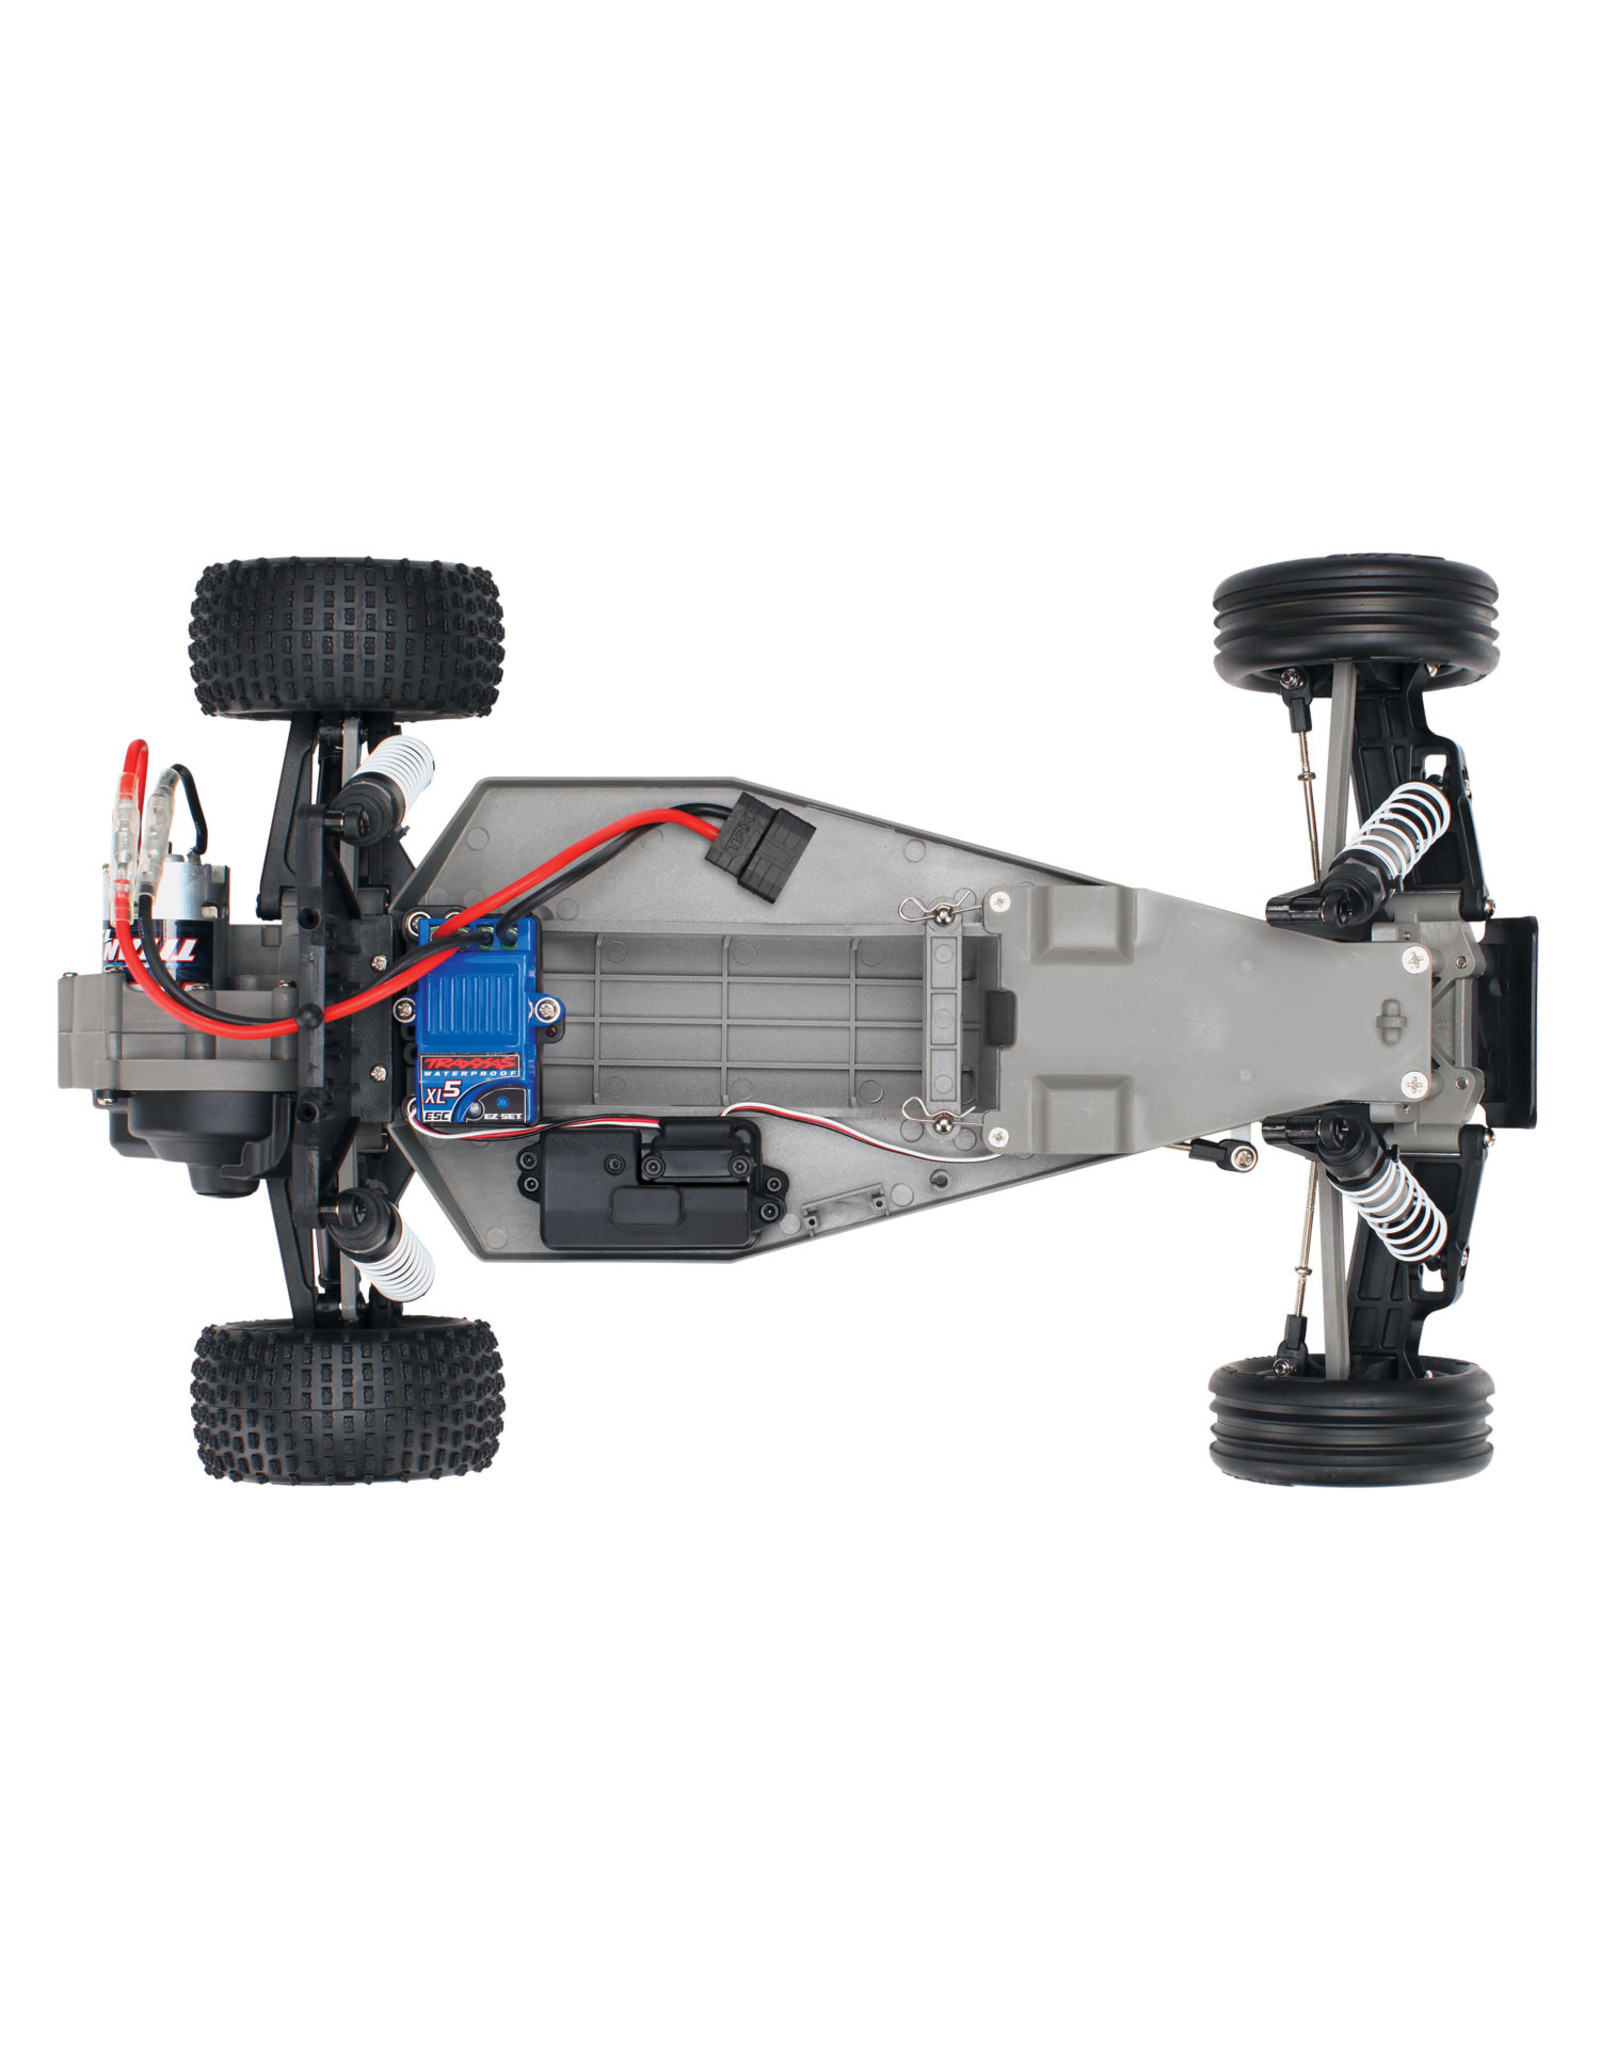 Traxxas 1/10 Bandit XL-5 RTR 2WD Buggy - Red